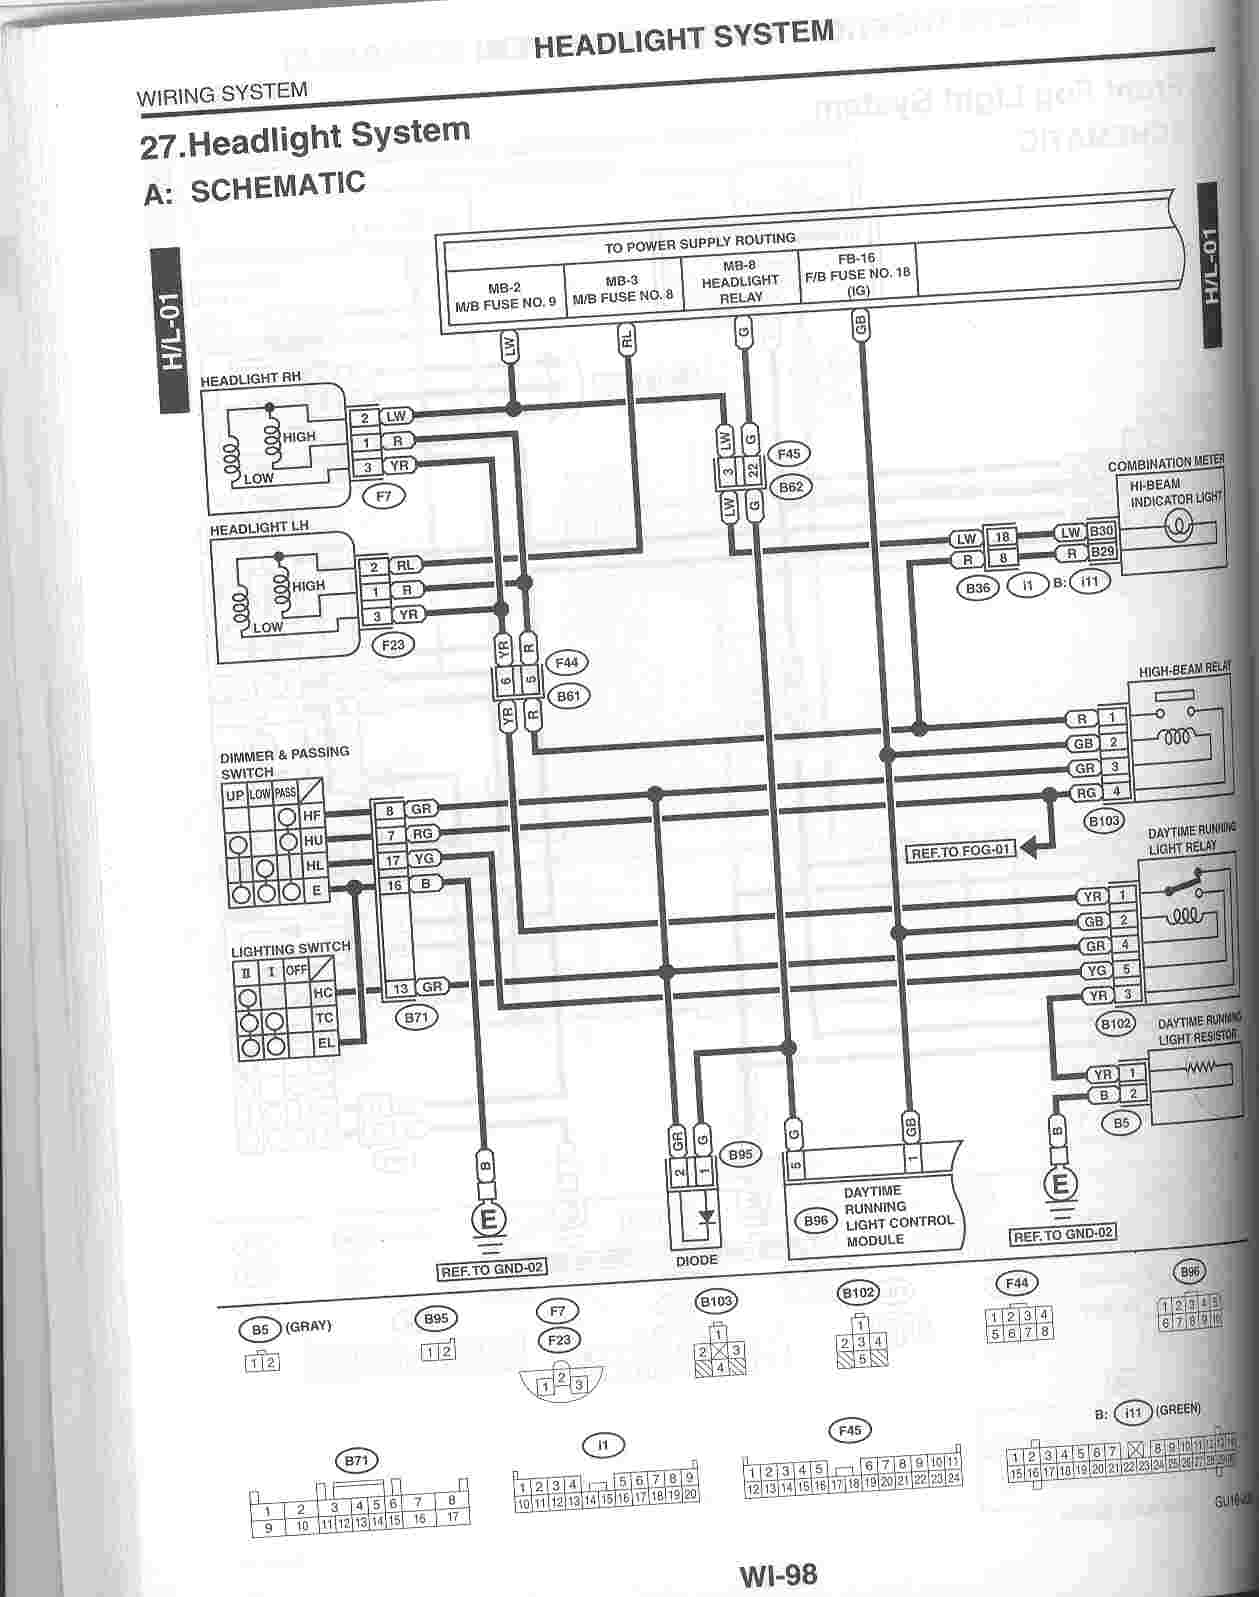 99 Subaru Impreza Headlight Wiring Diagram -Garmin Nmea 0183 Wiring Diagram  | Begeboy Wiring Diagram SourceBegeboy Wiring Diagram Source